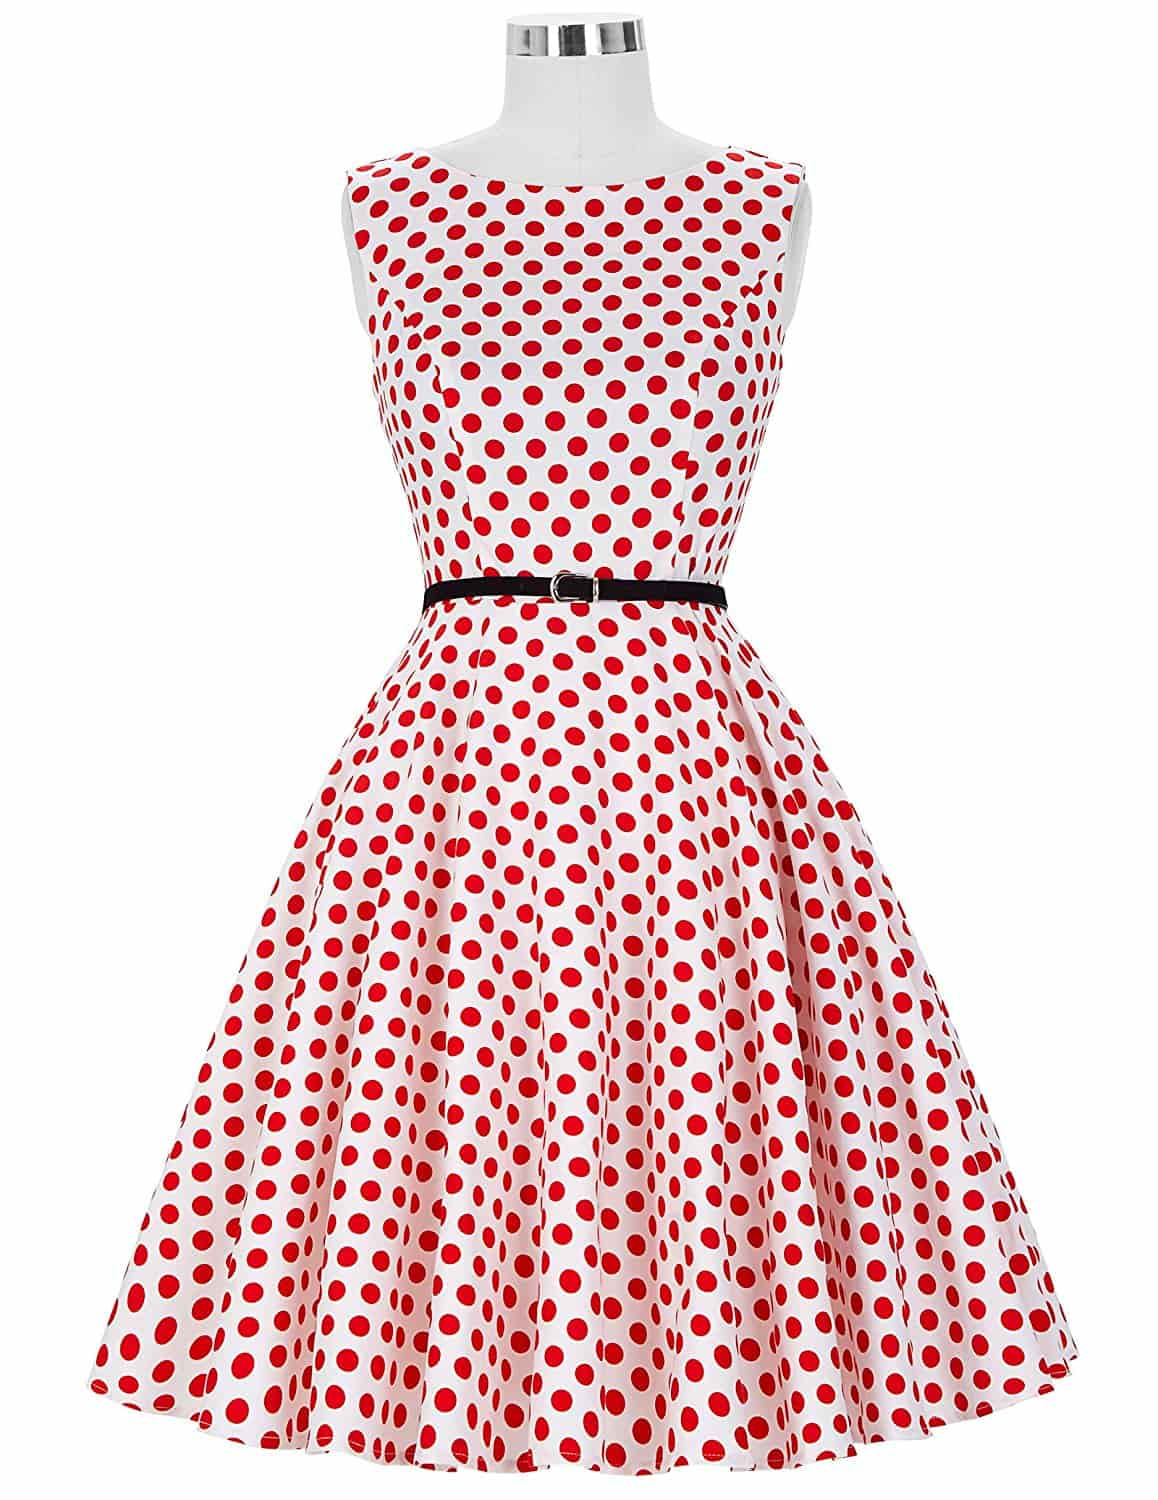 The Classic Red and White Polka Dot Dress | 1950sGlam